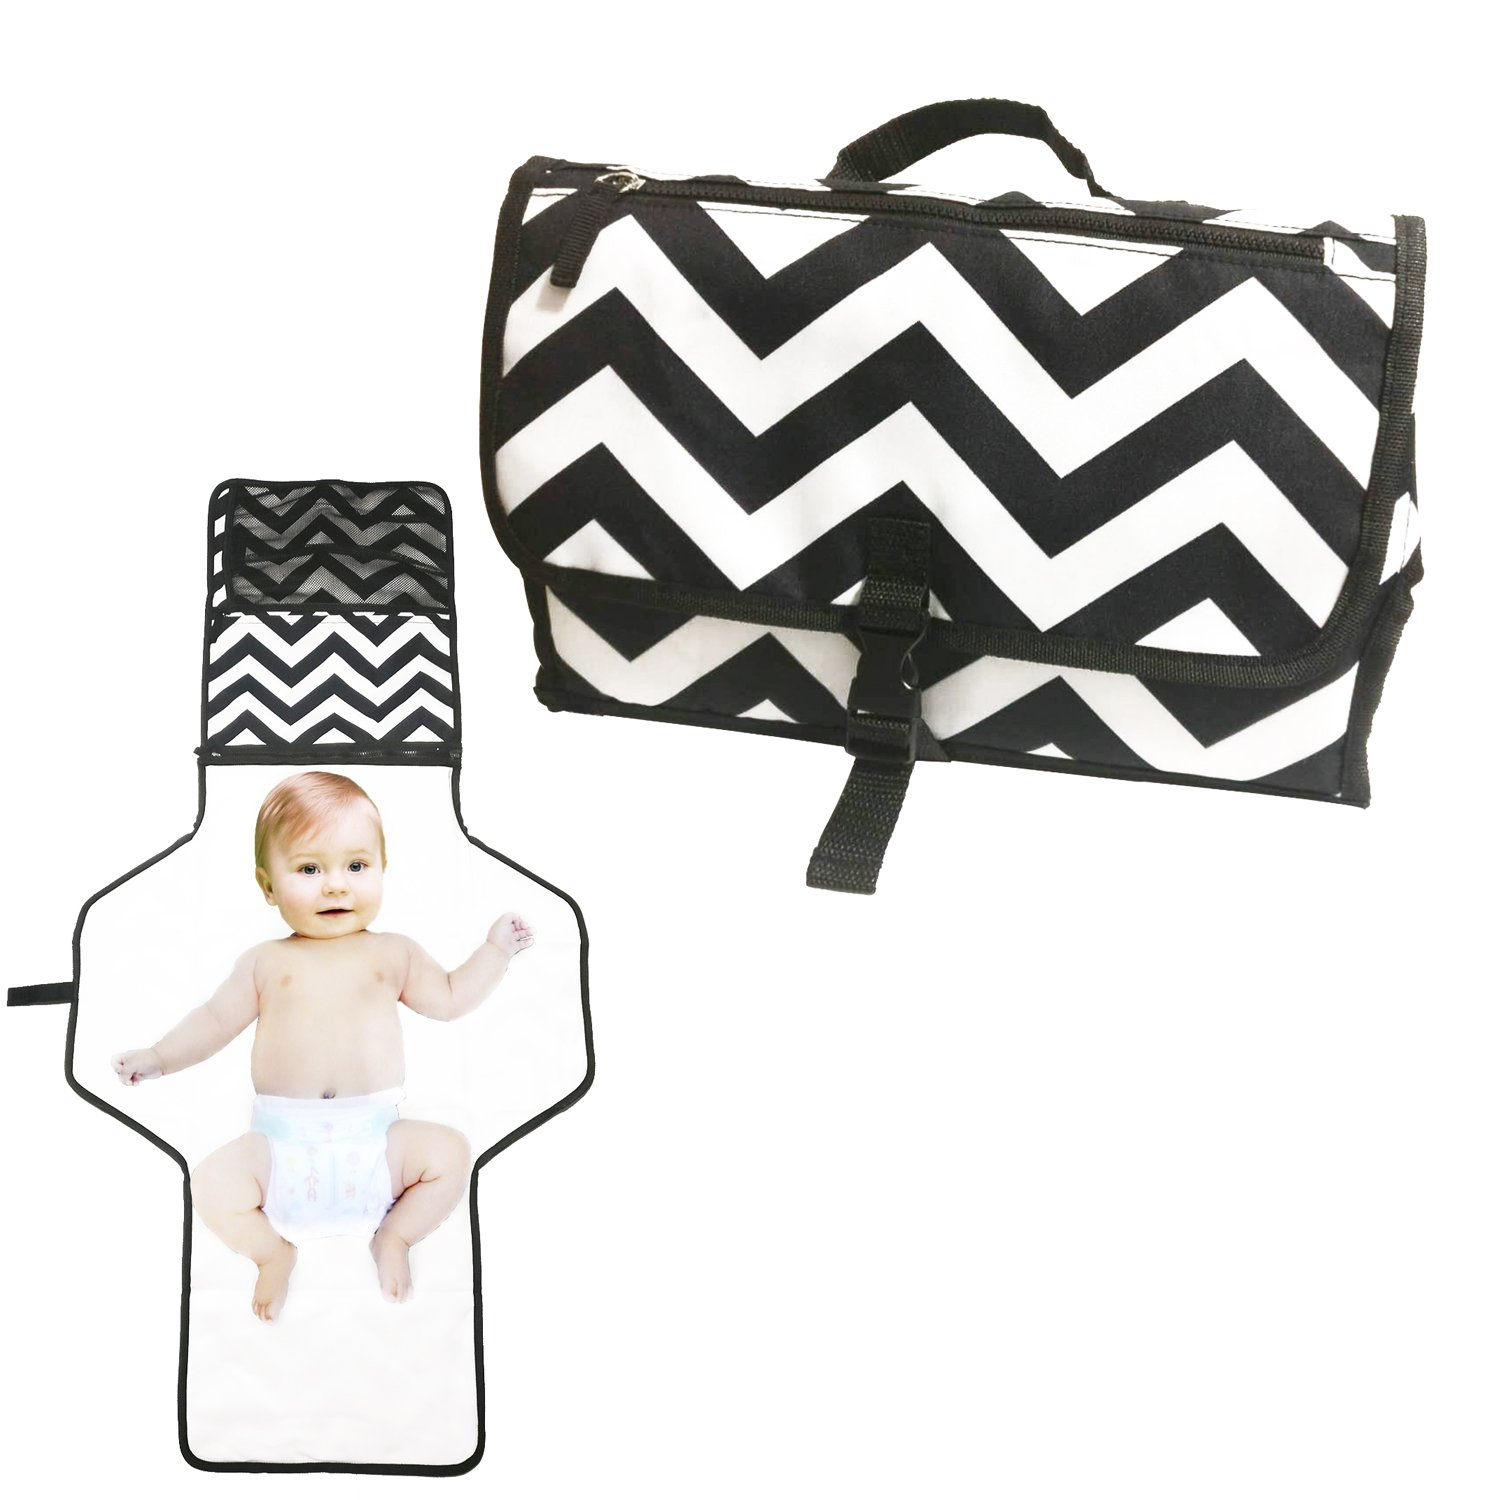 Diaper Clutch with Extra Long Diaper Changing Pad for Baby Newborn Infant,Diaper Bag Foldable Mat & Built-in Head Cushion Extra Long Portable Changing Station for Travel and Home EEZSEVEN